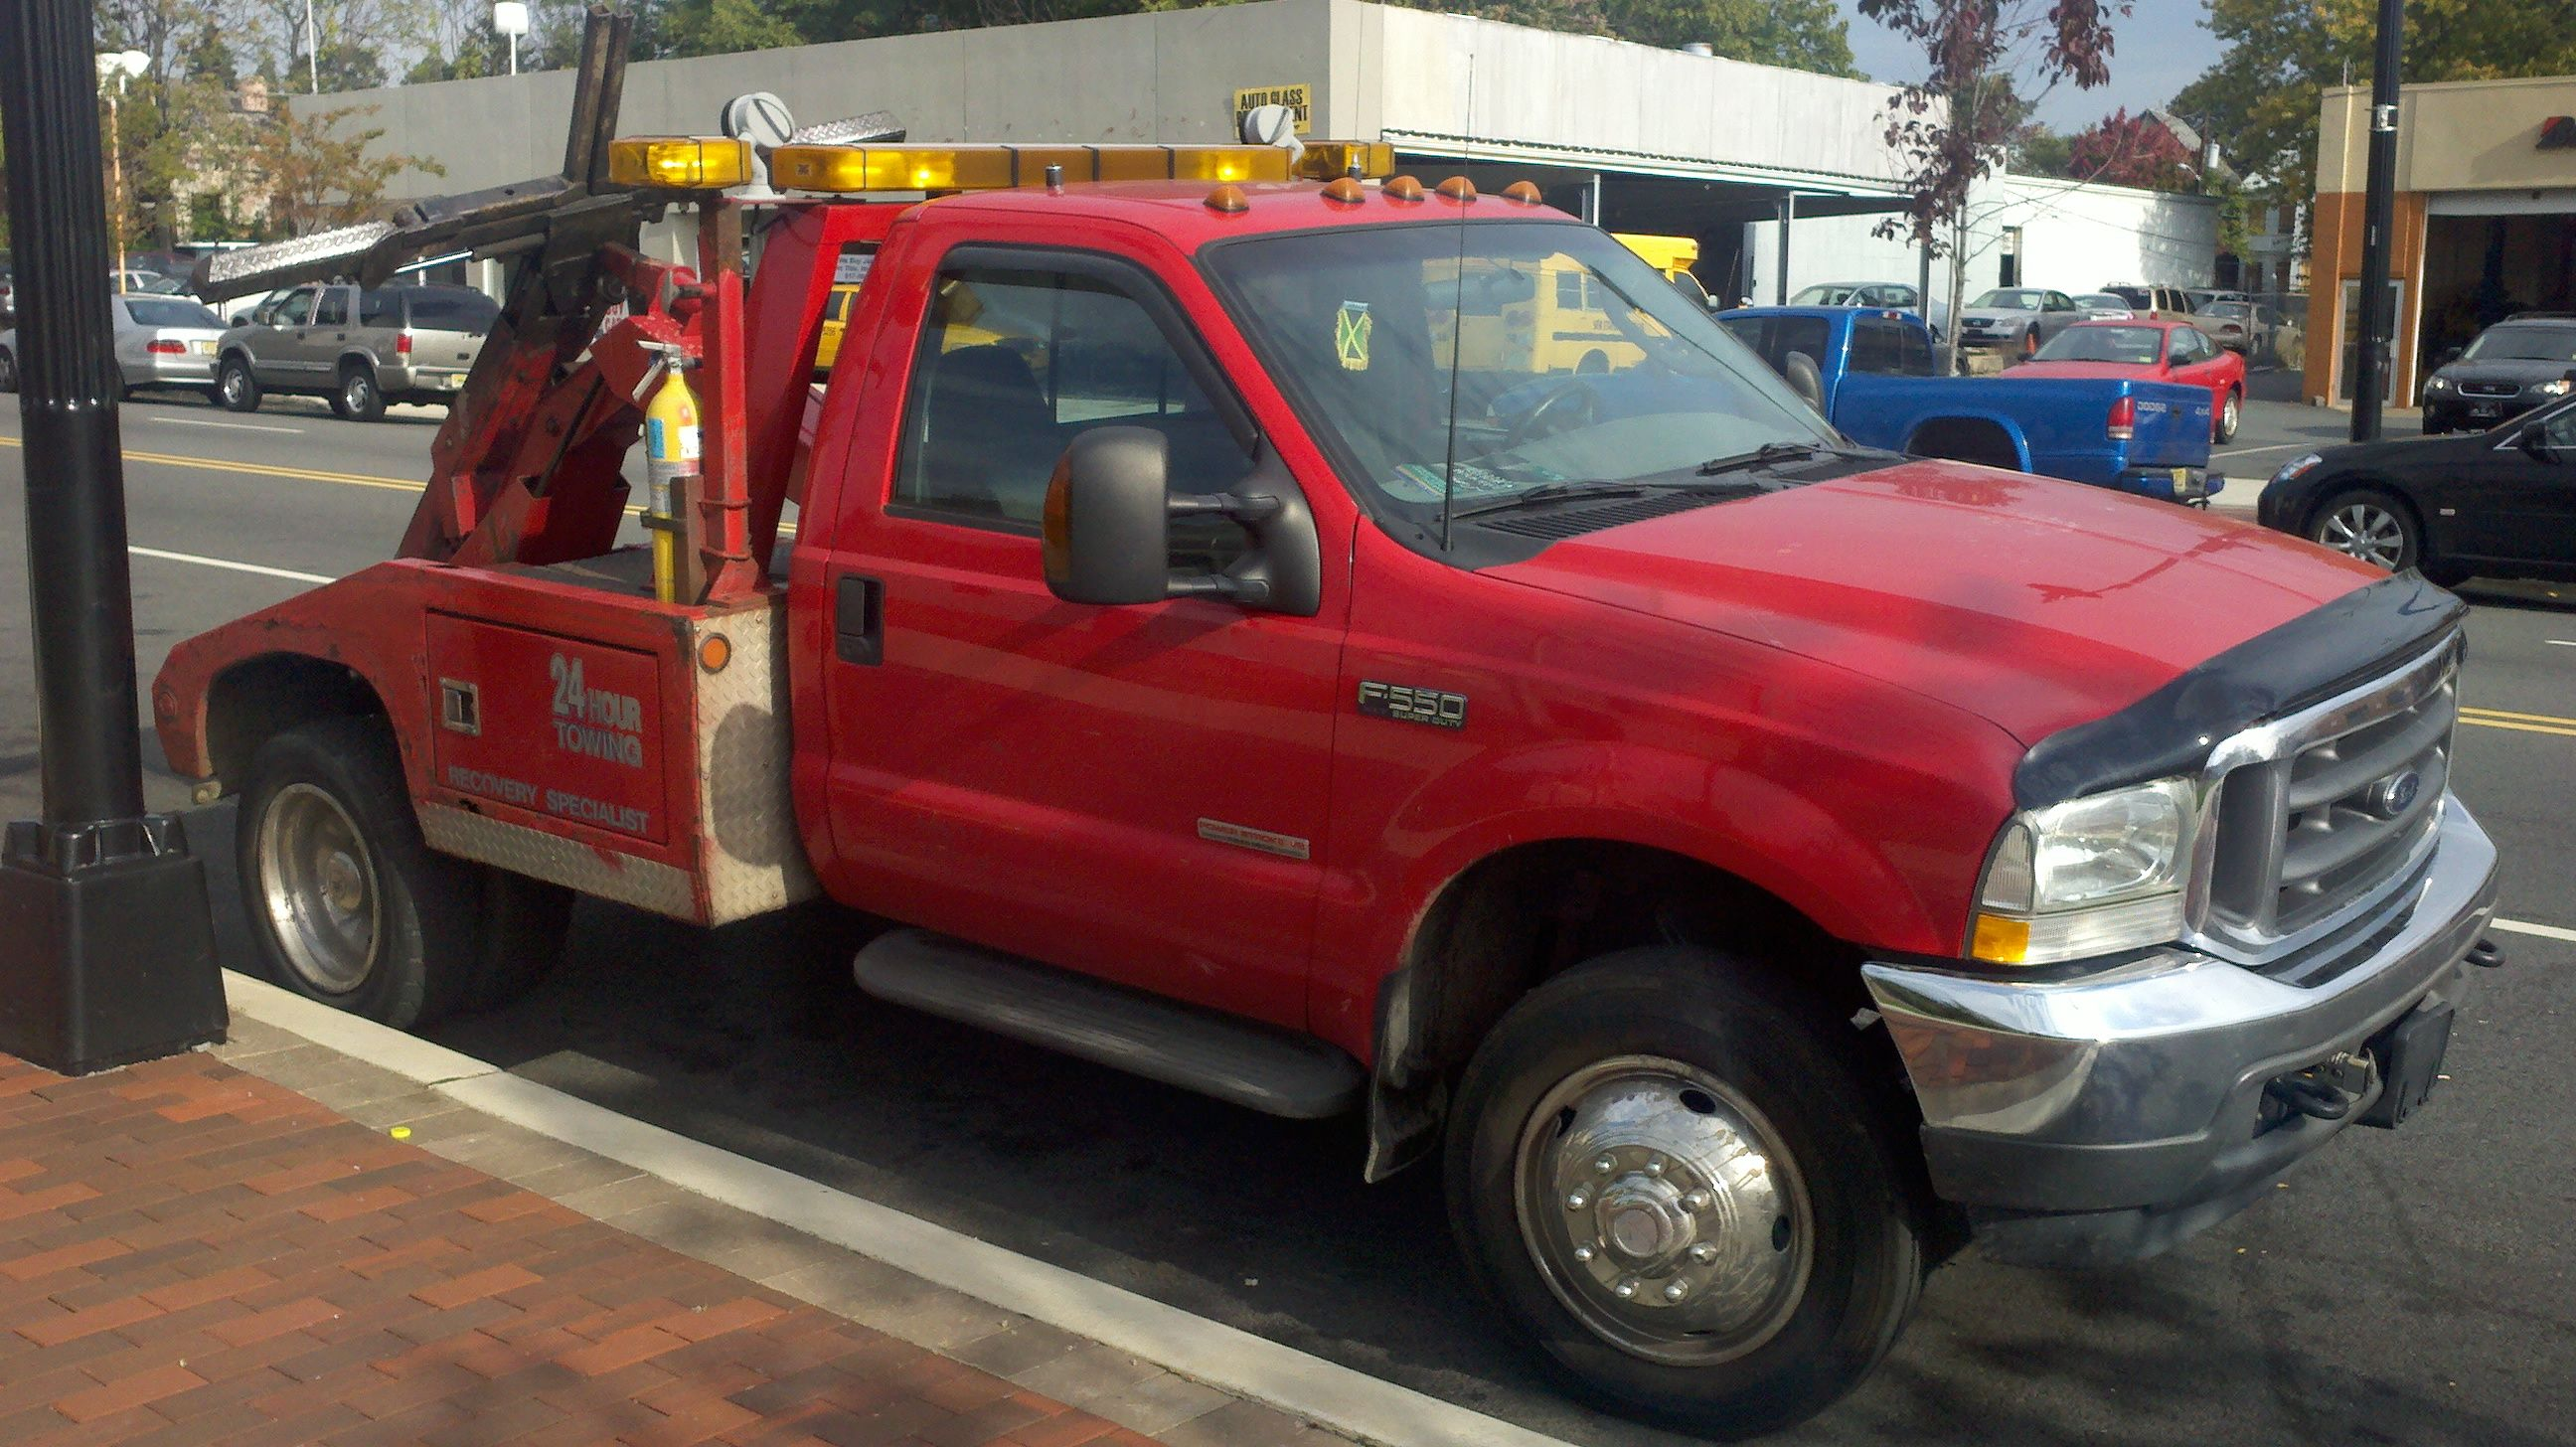 Free Junk Car Removal NJ Services (With images) Car